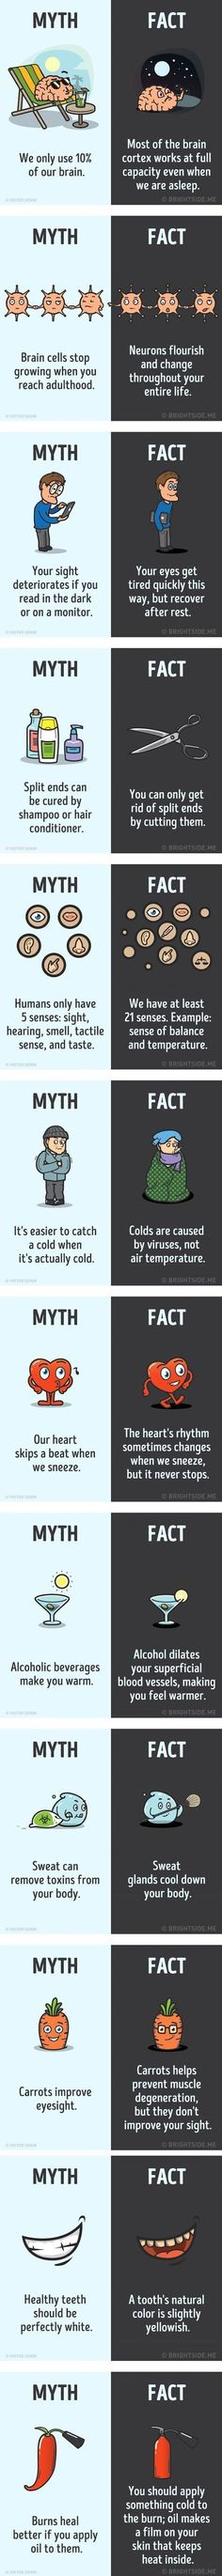 Science myths and facts about the human body with illustrations... But some or too simplified or there is truth in the mythe (vitamine D from Carrots to create rhodopsine)